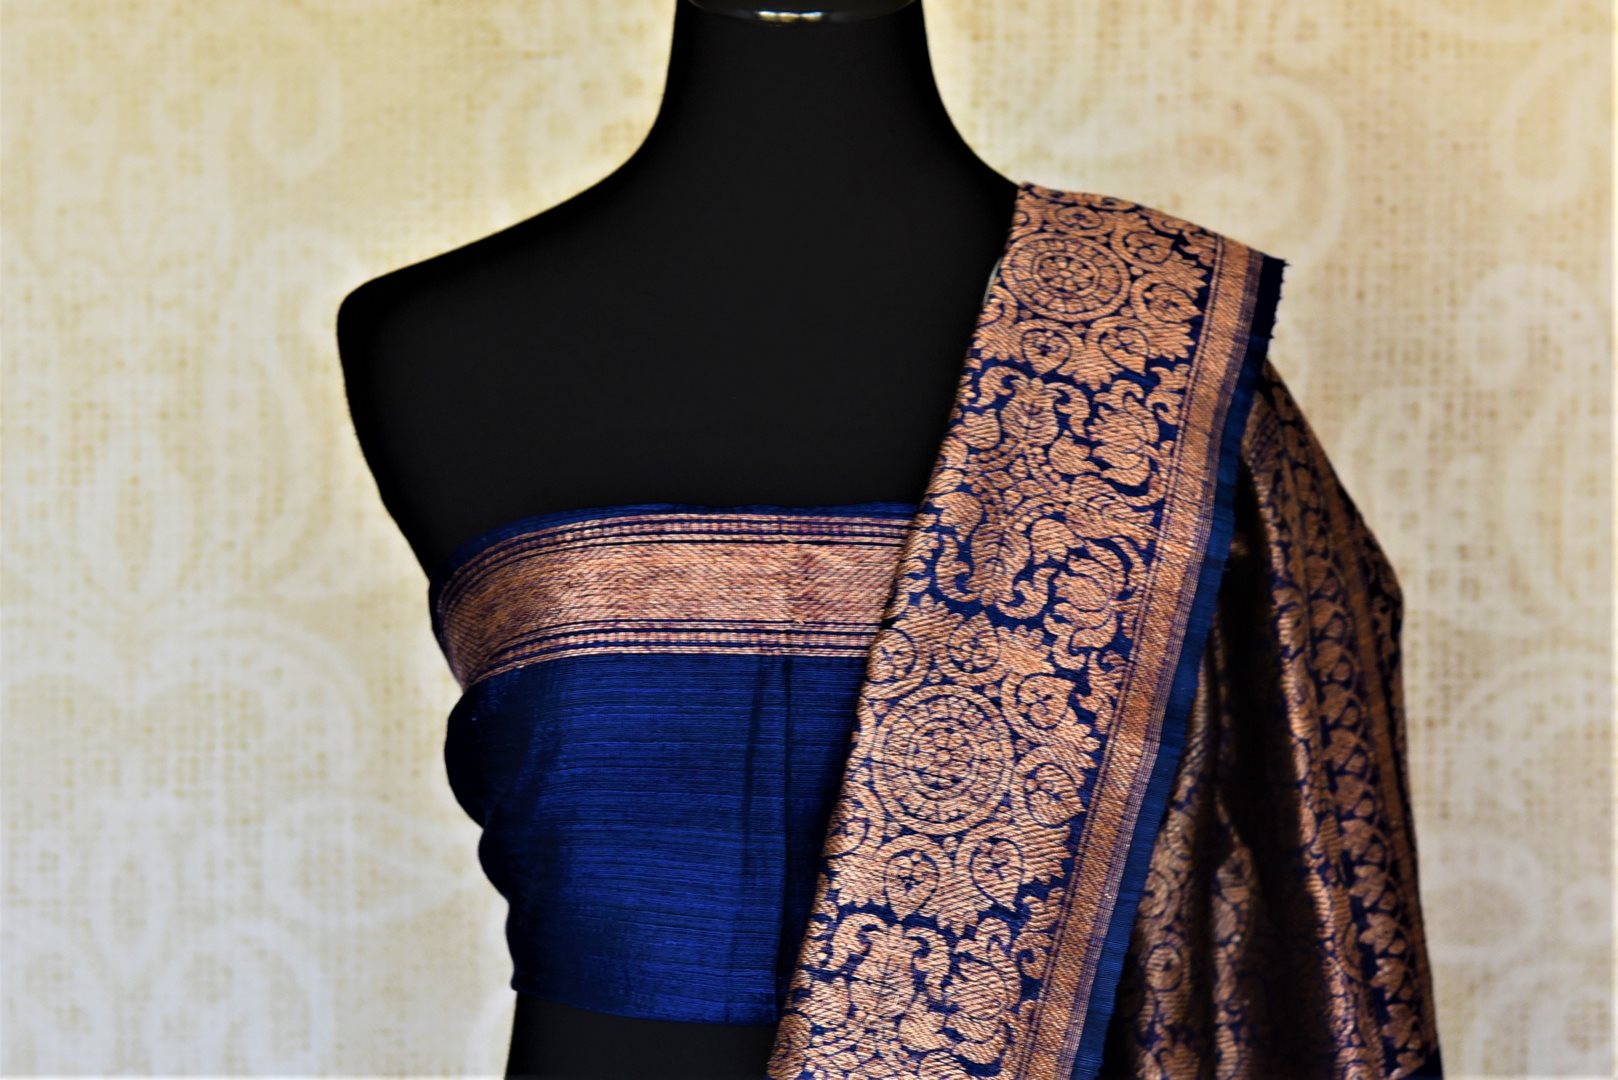 Shop elegant powder blue tussar Benarasi sari online in USA with dark blue antique zari border. Keep your ethnic style updated with latest designer saris, handloom sarees, pure silk sarees from Pure Elegance Indian fashion store in USA.-blouse pallu